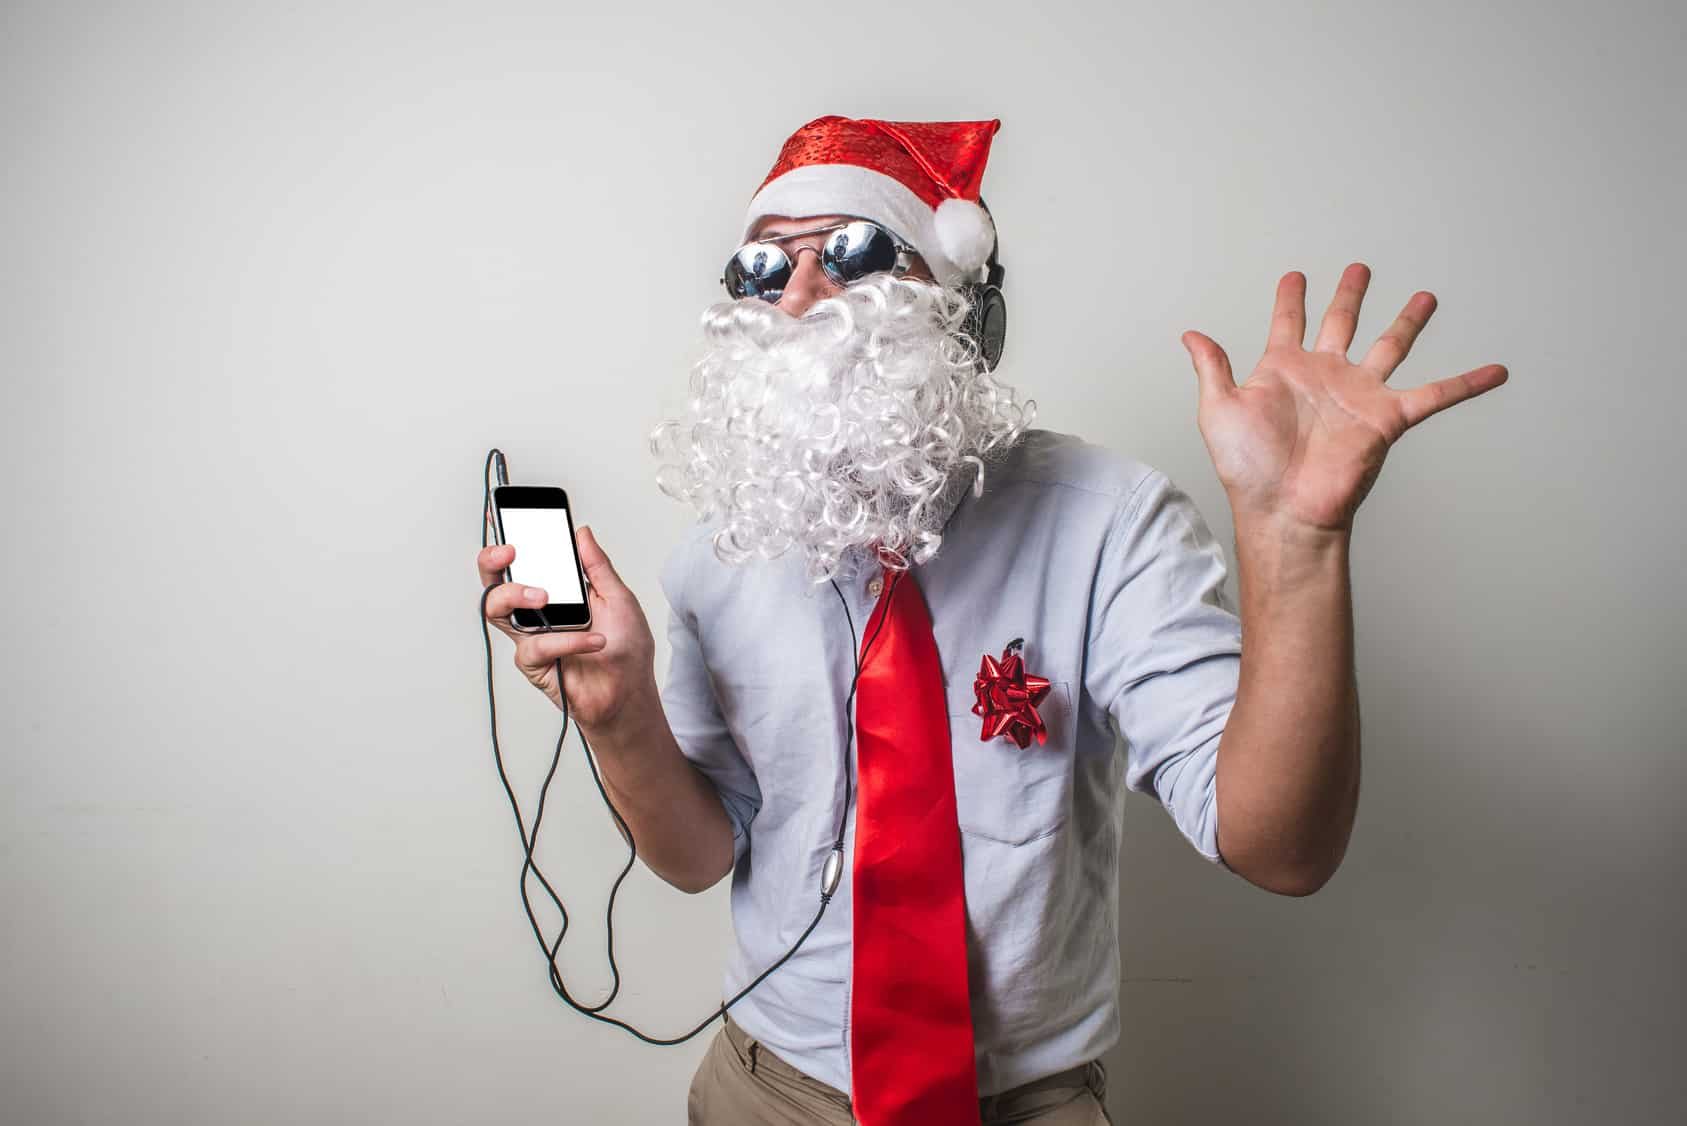 Search Trends: Is November Too Early for Christmas Music? - Brad Lowrey